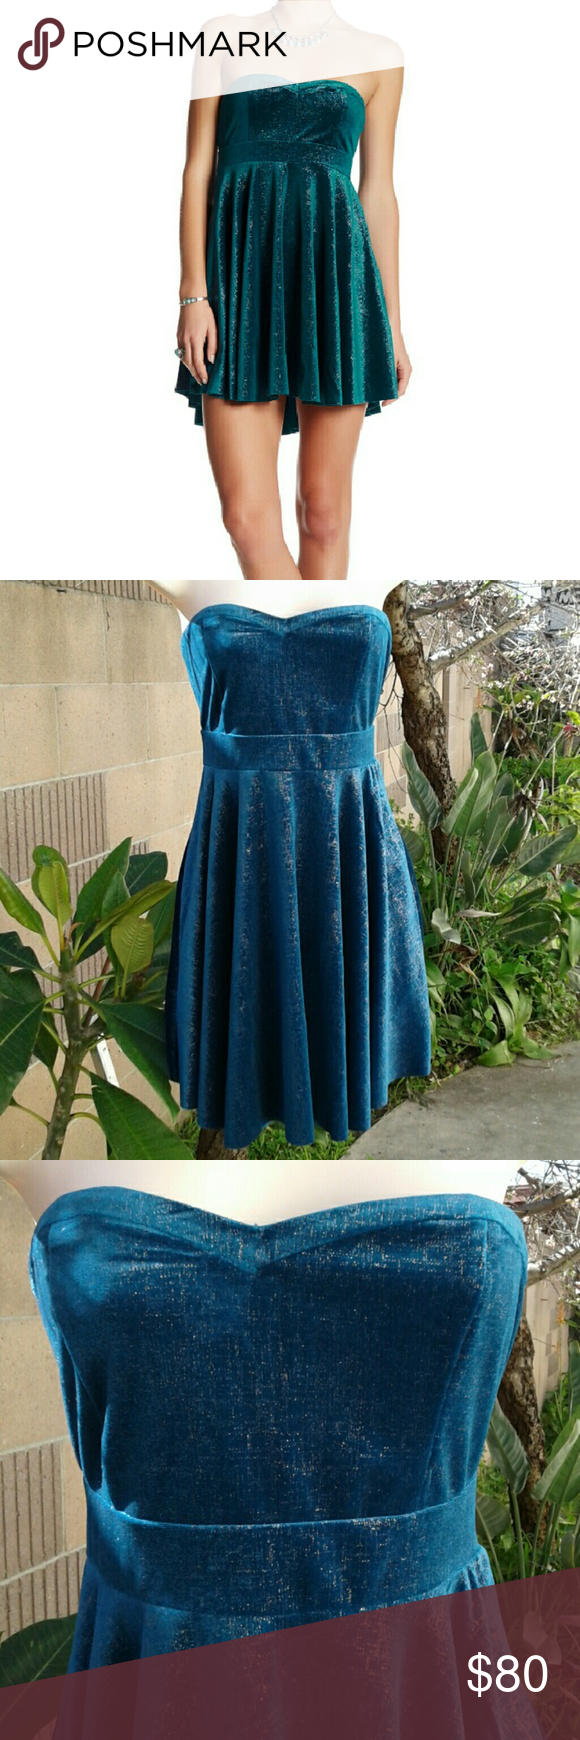 Free People velvet dress Free People velvet dress. Color is more turquoise (greenish/blue). Gorgeous dress!! New with tags. Free People Dresses